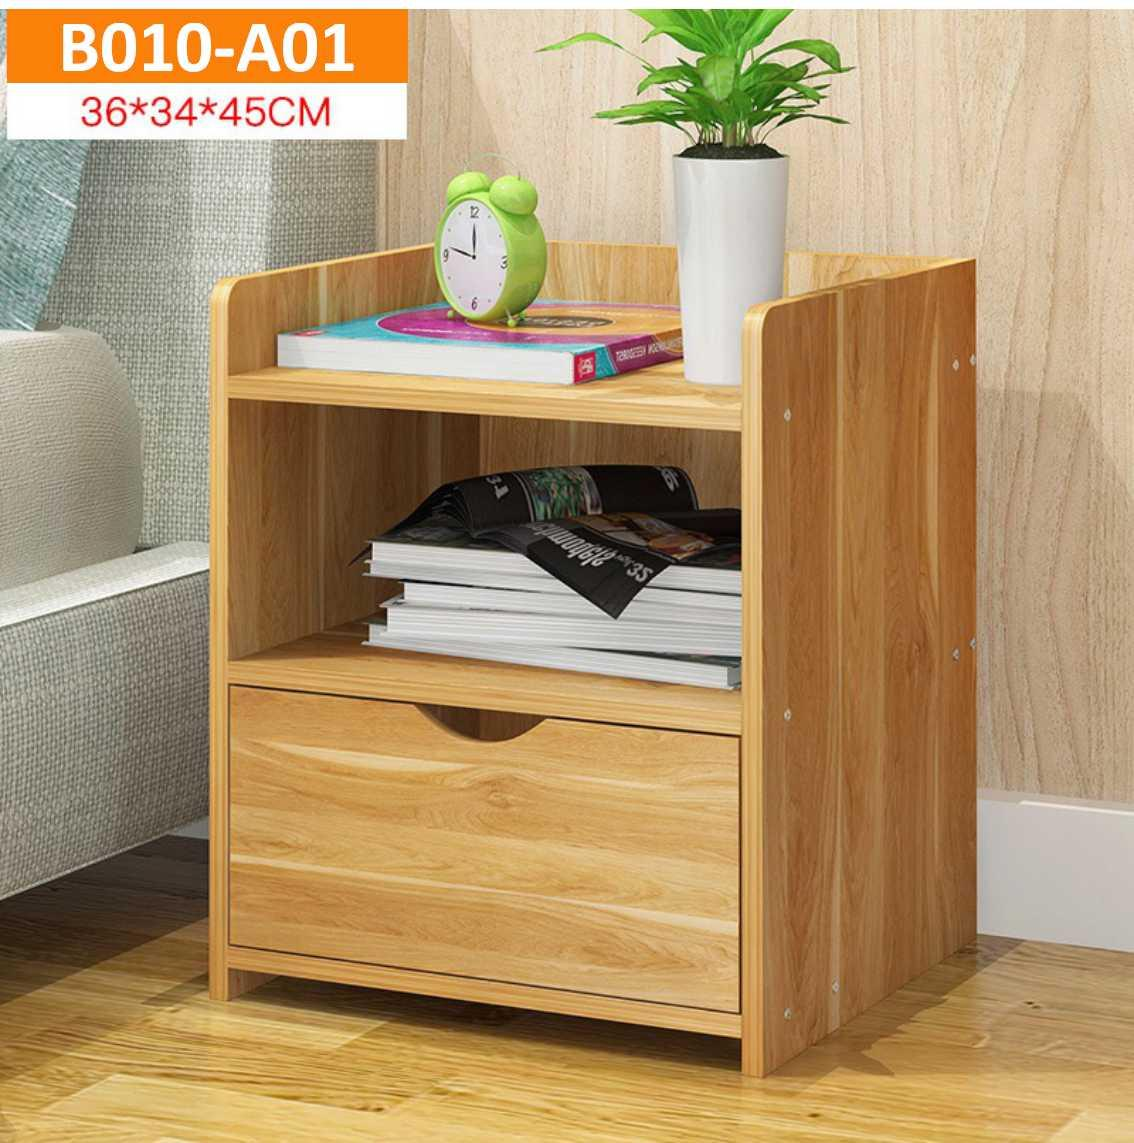 Price Bedroom Furniture Bedside Table Cabinet Nightstand Tables Drawer Bedstand Bedside Table Ideal Life Singapore